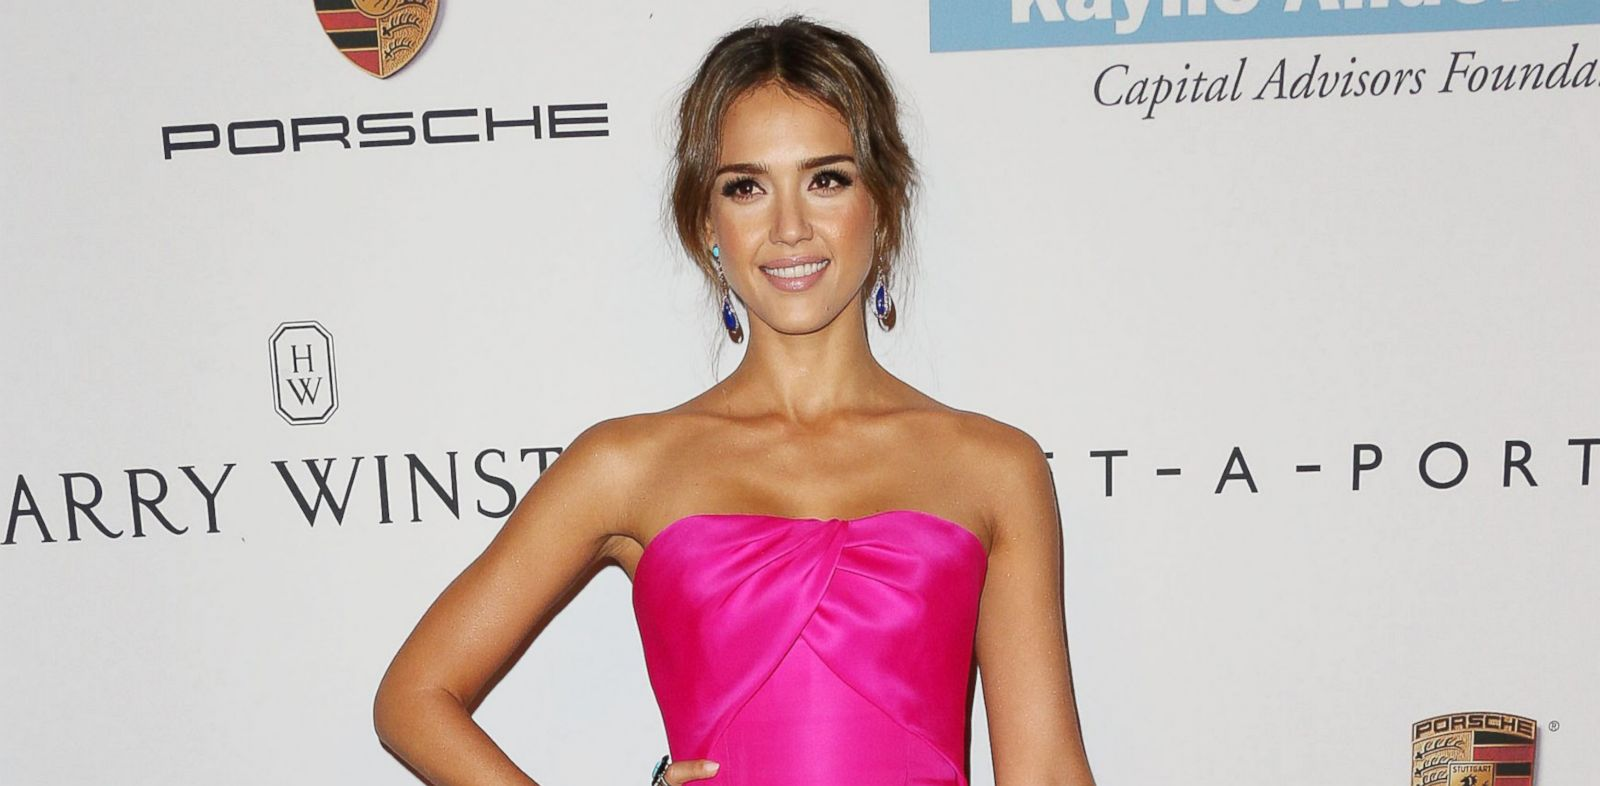 PHOTO: Actress Jessica Alba attends the Second Annual Baby2Baby Gala at the Book Bindery in this Nov. 9, 2013 file photo.